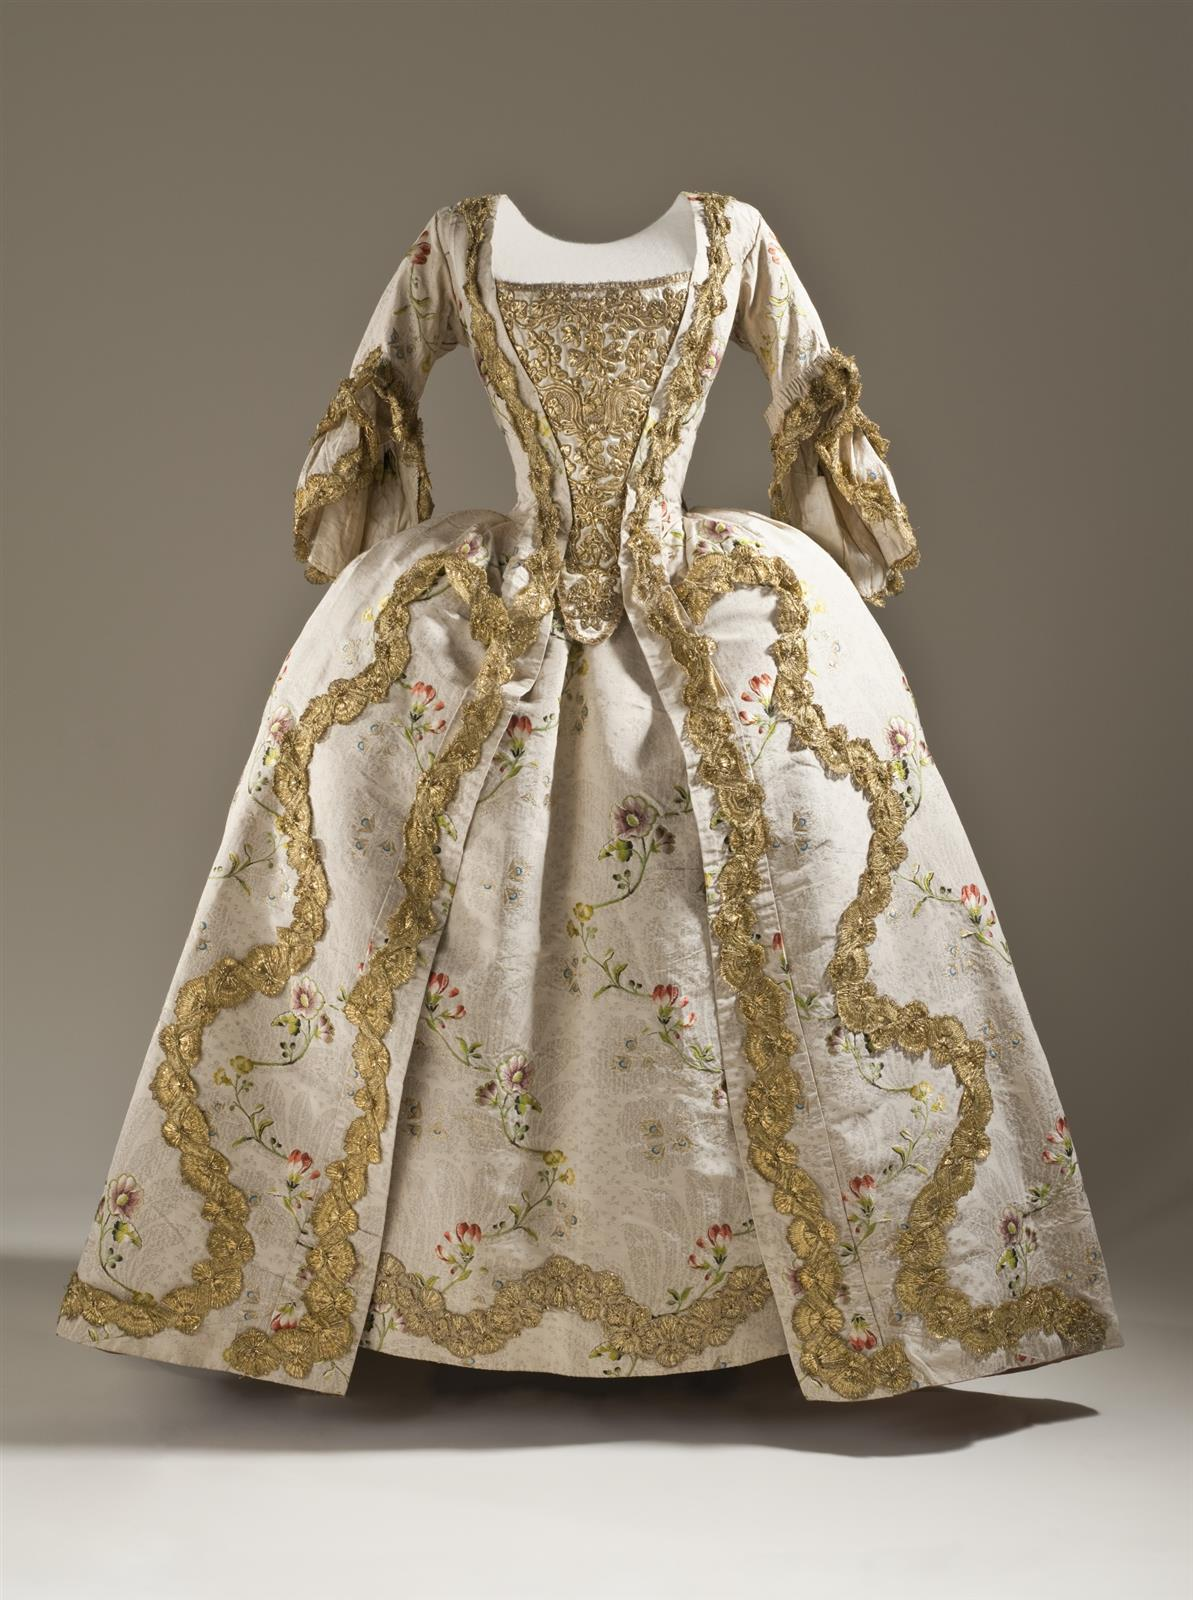 1760. Robe à la française. French. Silk plain weave (faille) with silk and metallic-thread supplementary weft patterning, and metallic lace trim. LACMA